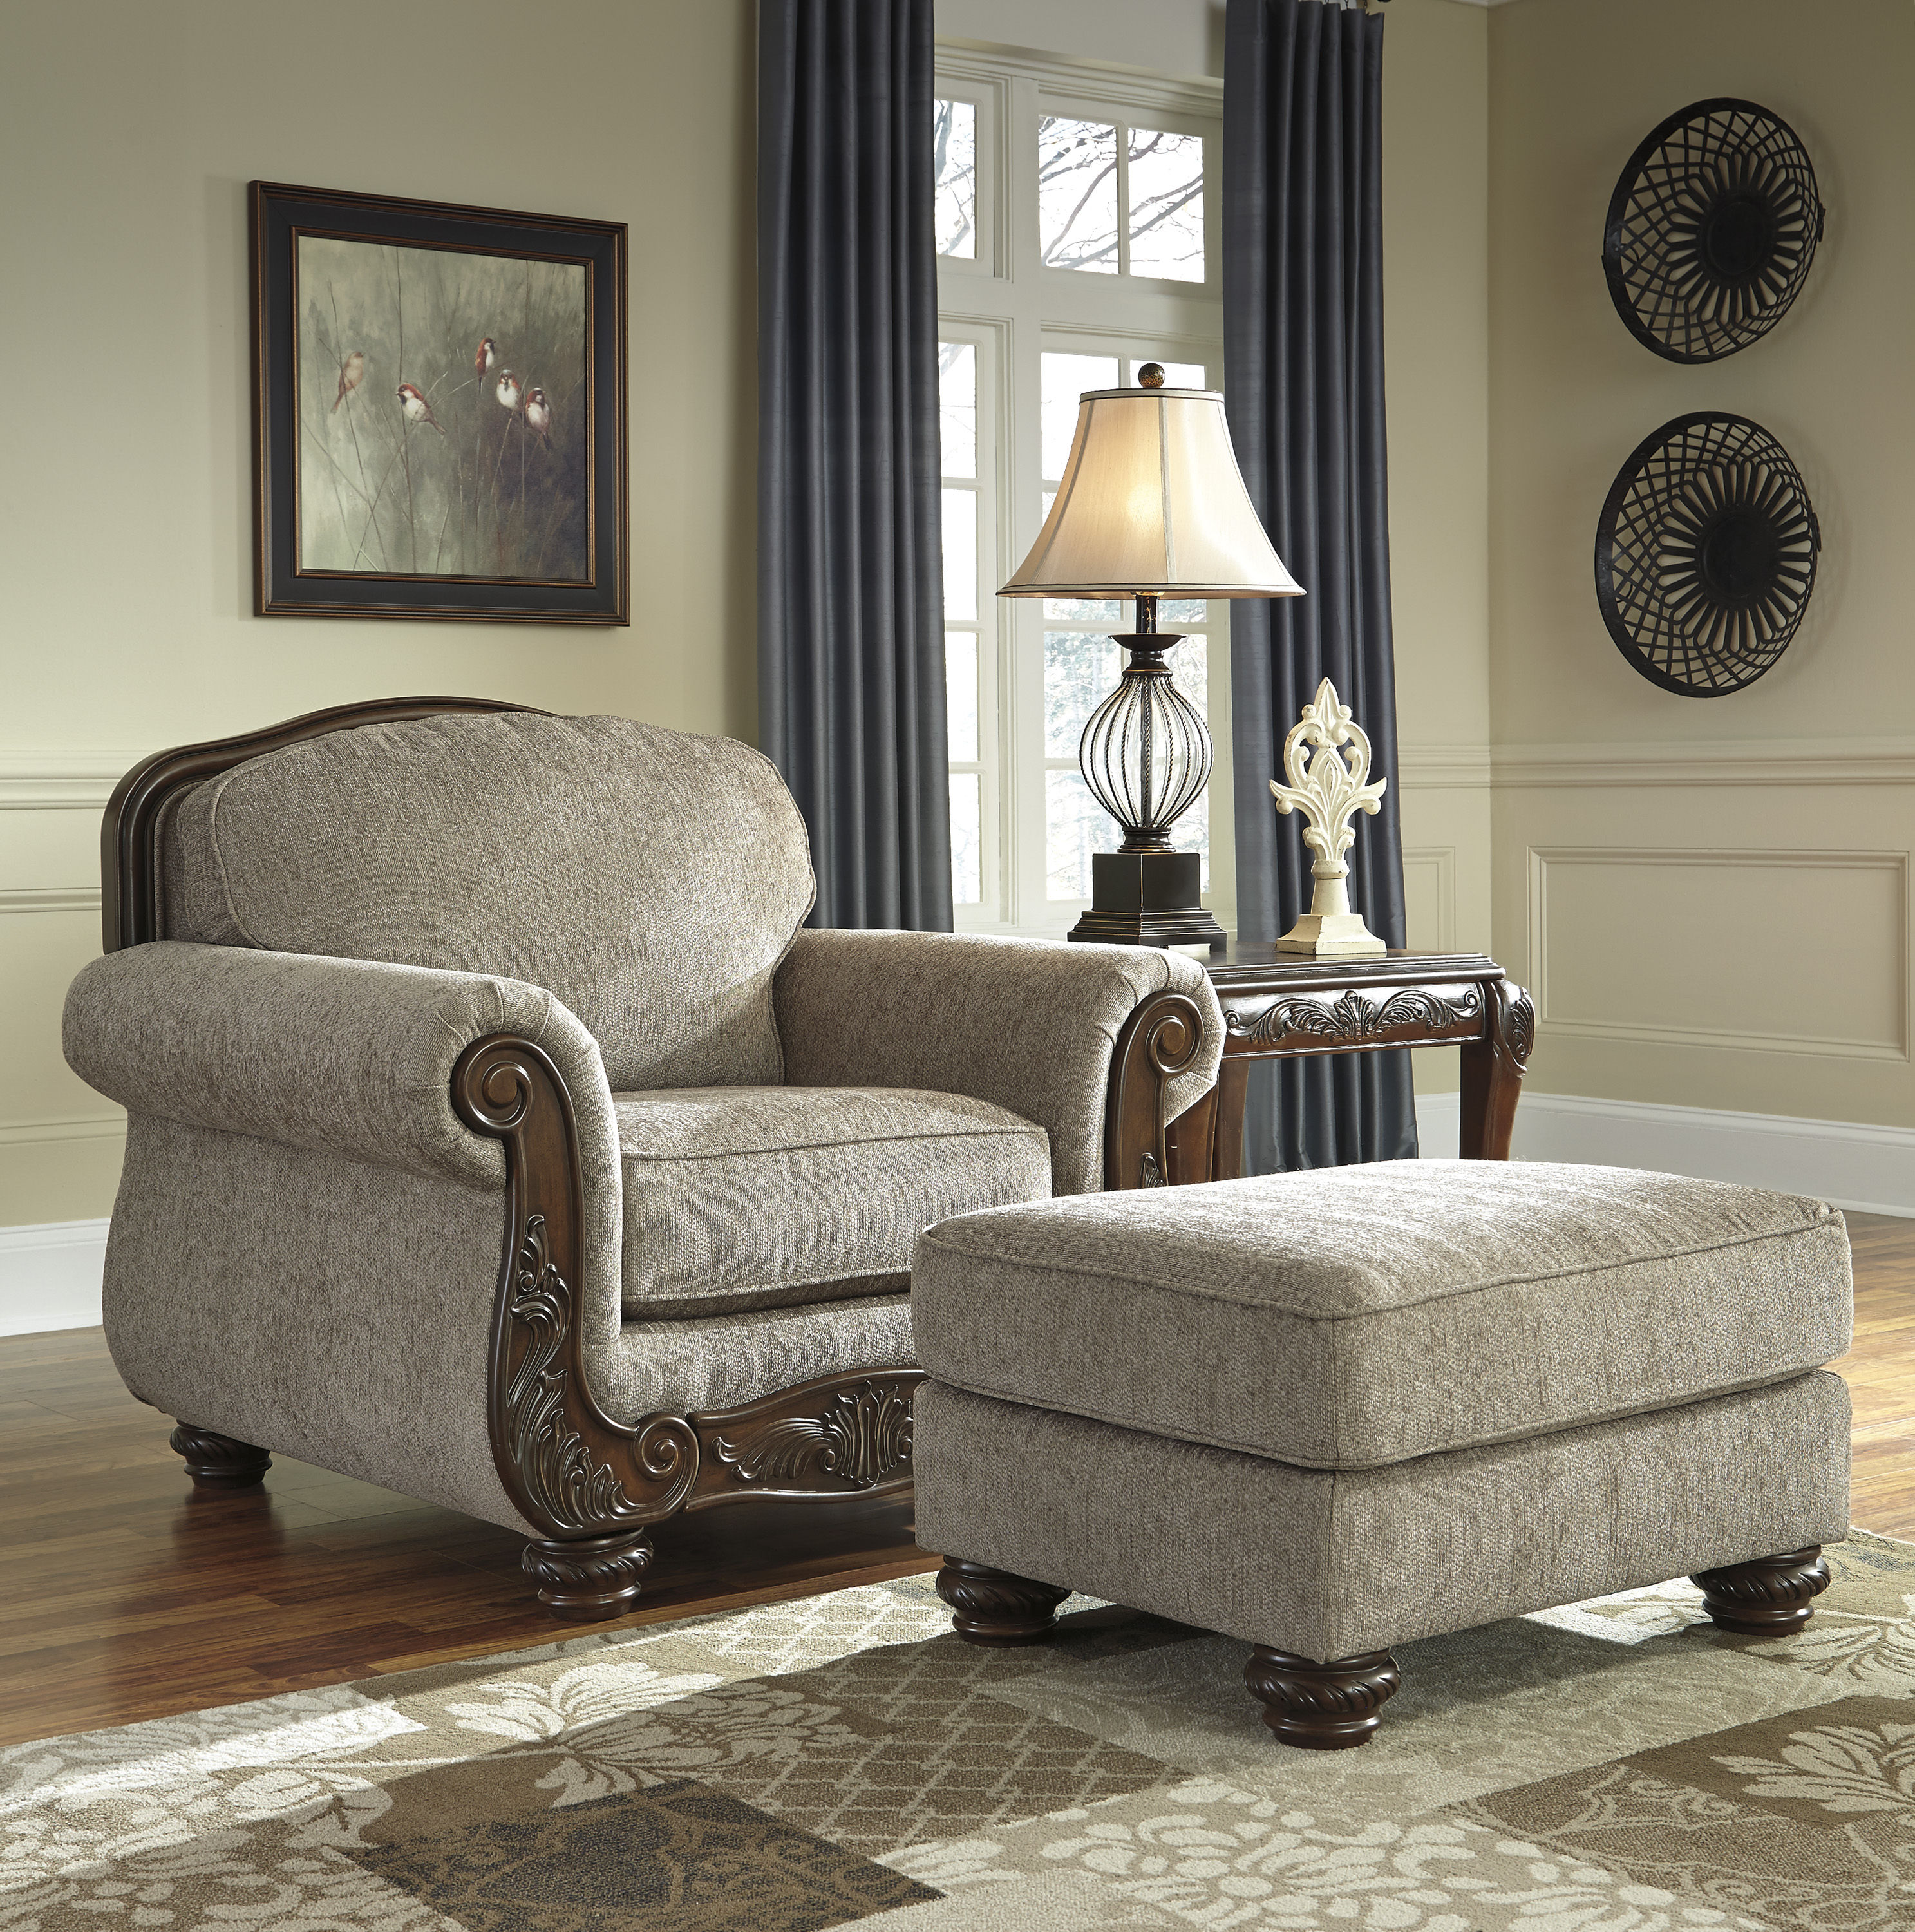 Bedroom Chairs And Ottomans: Ashley Furniture Cecilyn Cocoa Chair And Ottomans Set